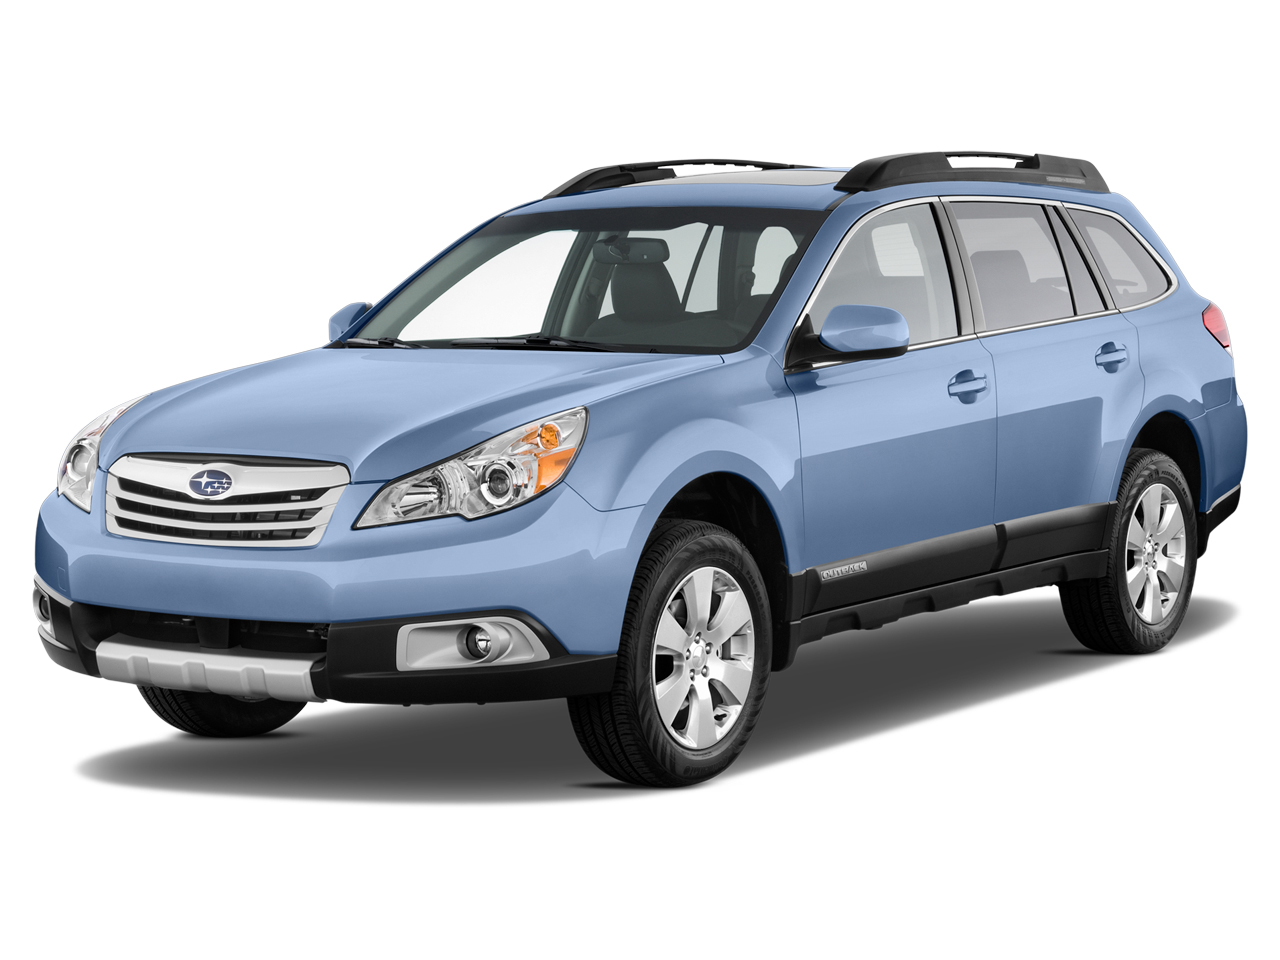 2012 Subaru Outback Review Ratings Specs Prices And